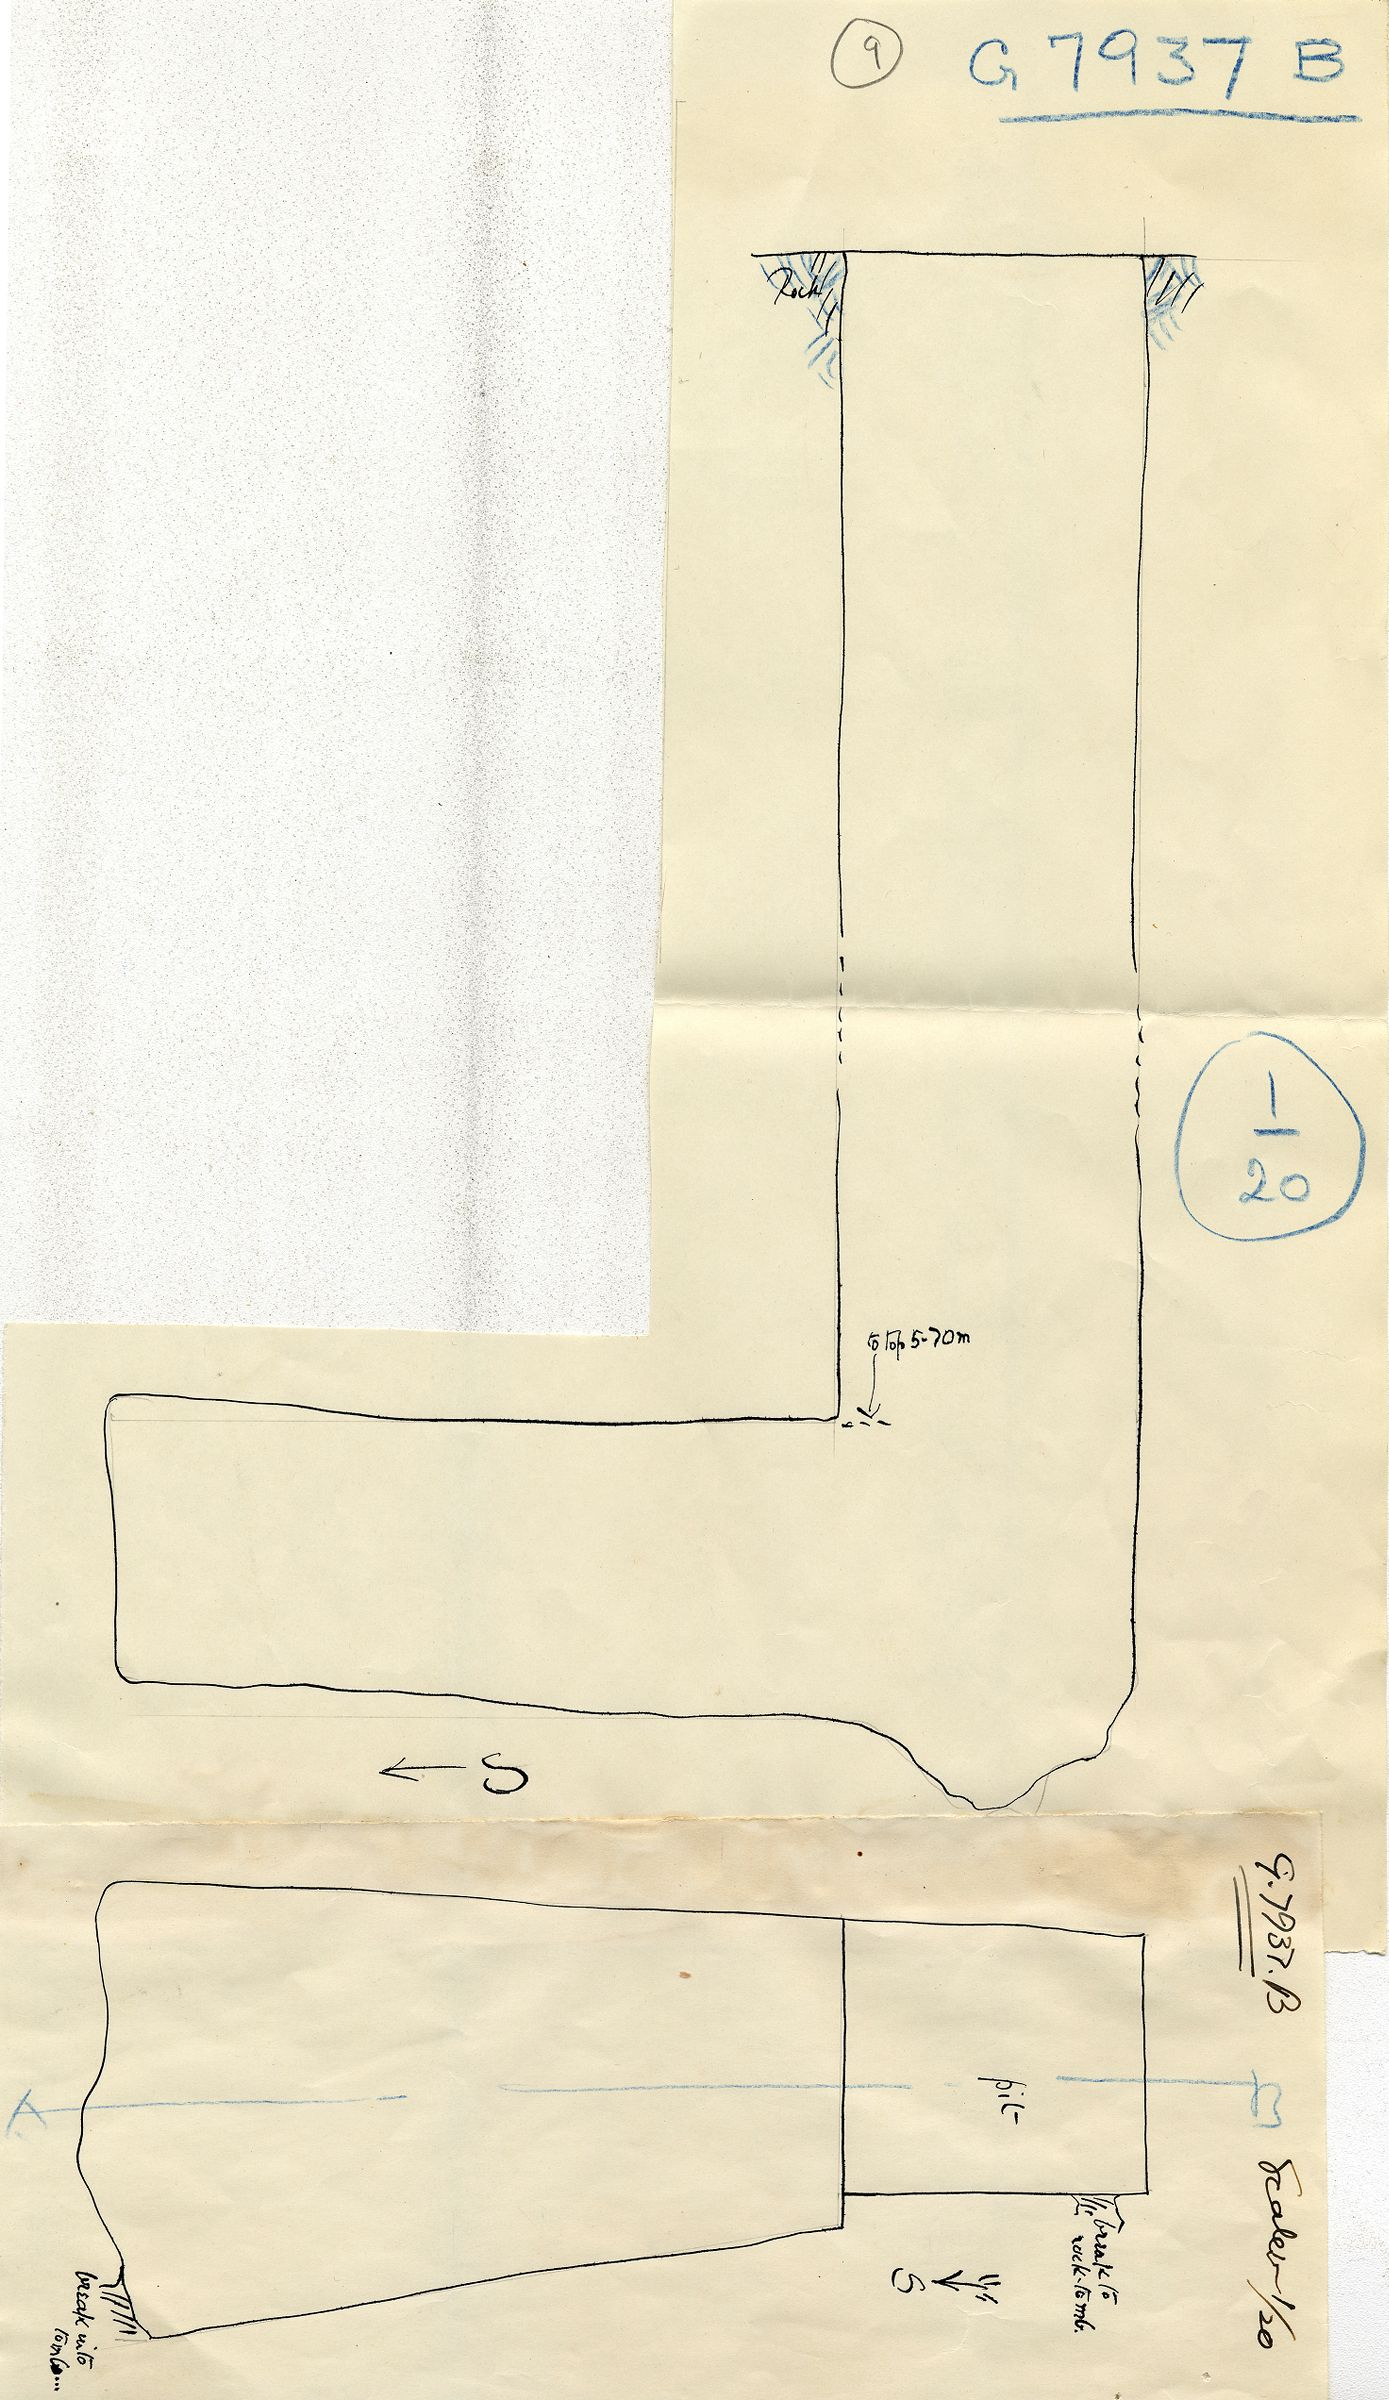 Maps and plans: G 7937, Shaft B